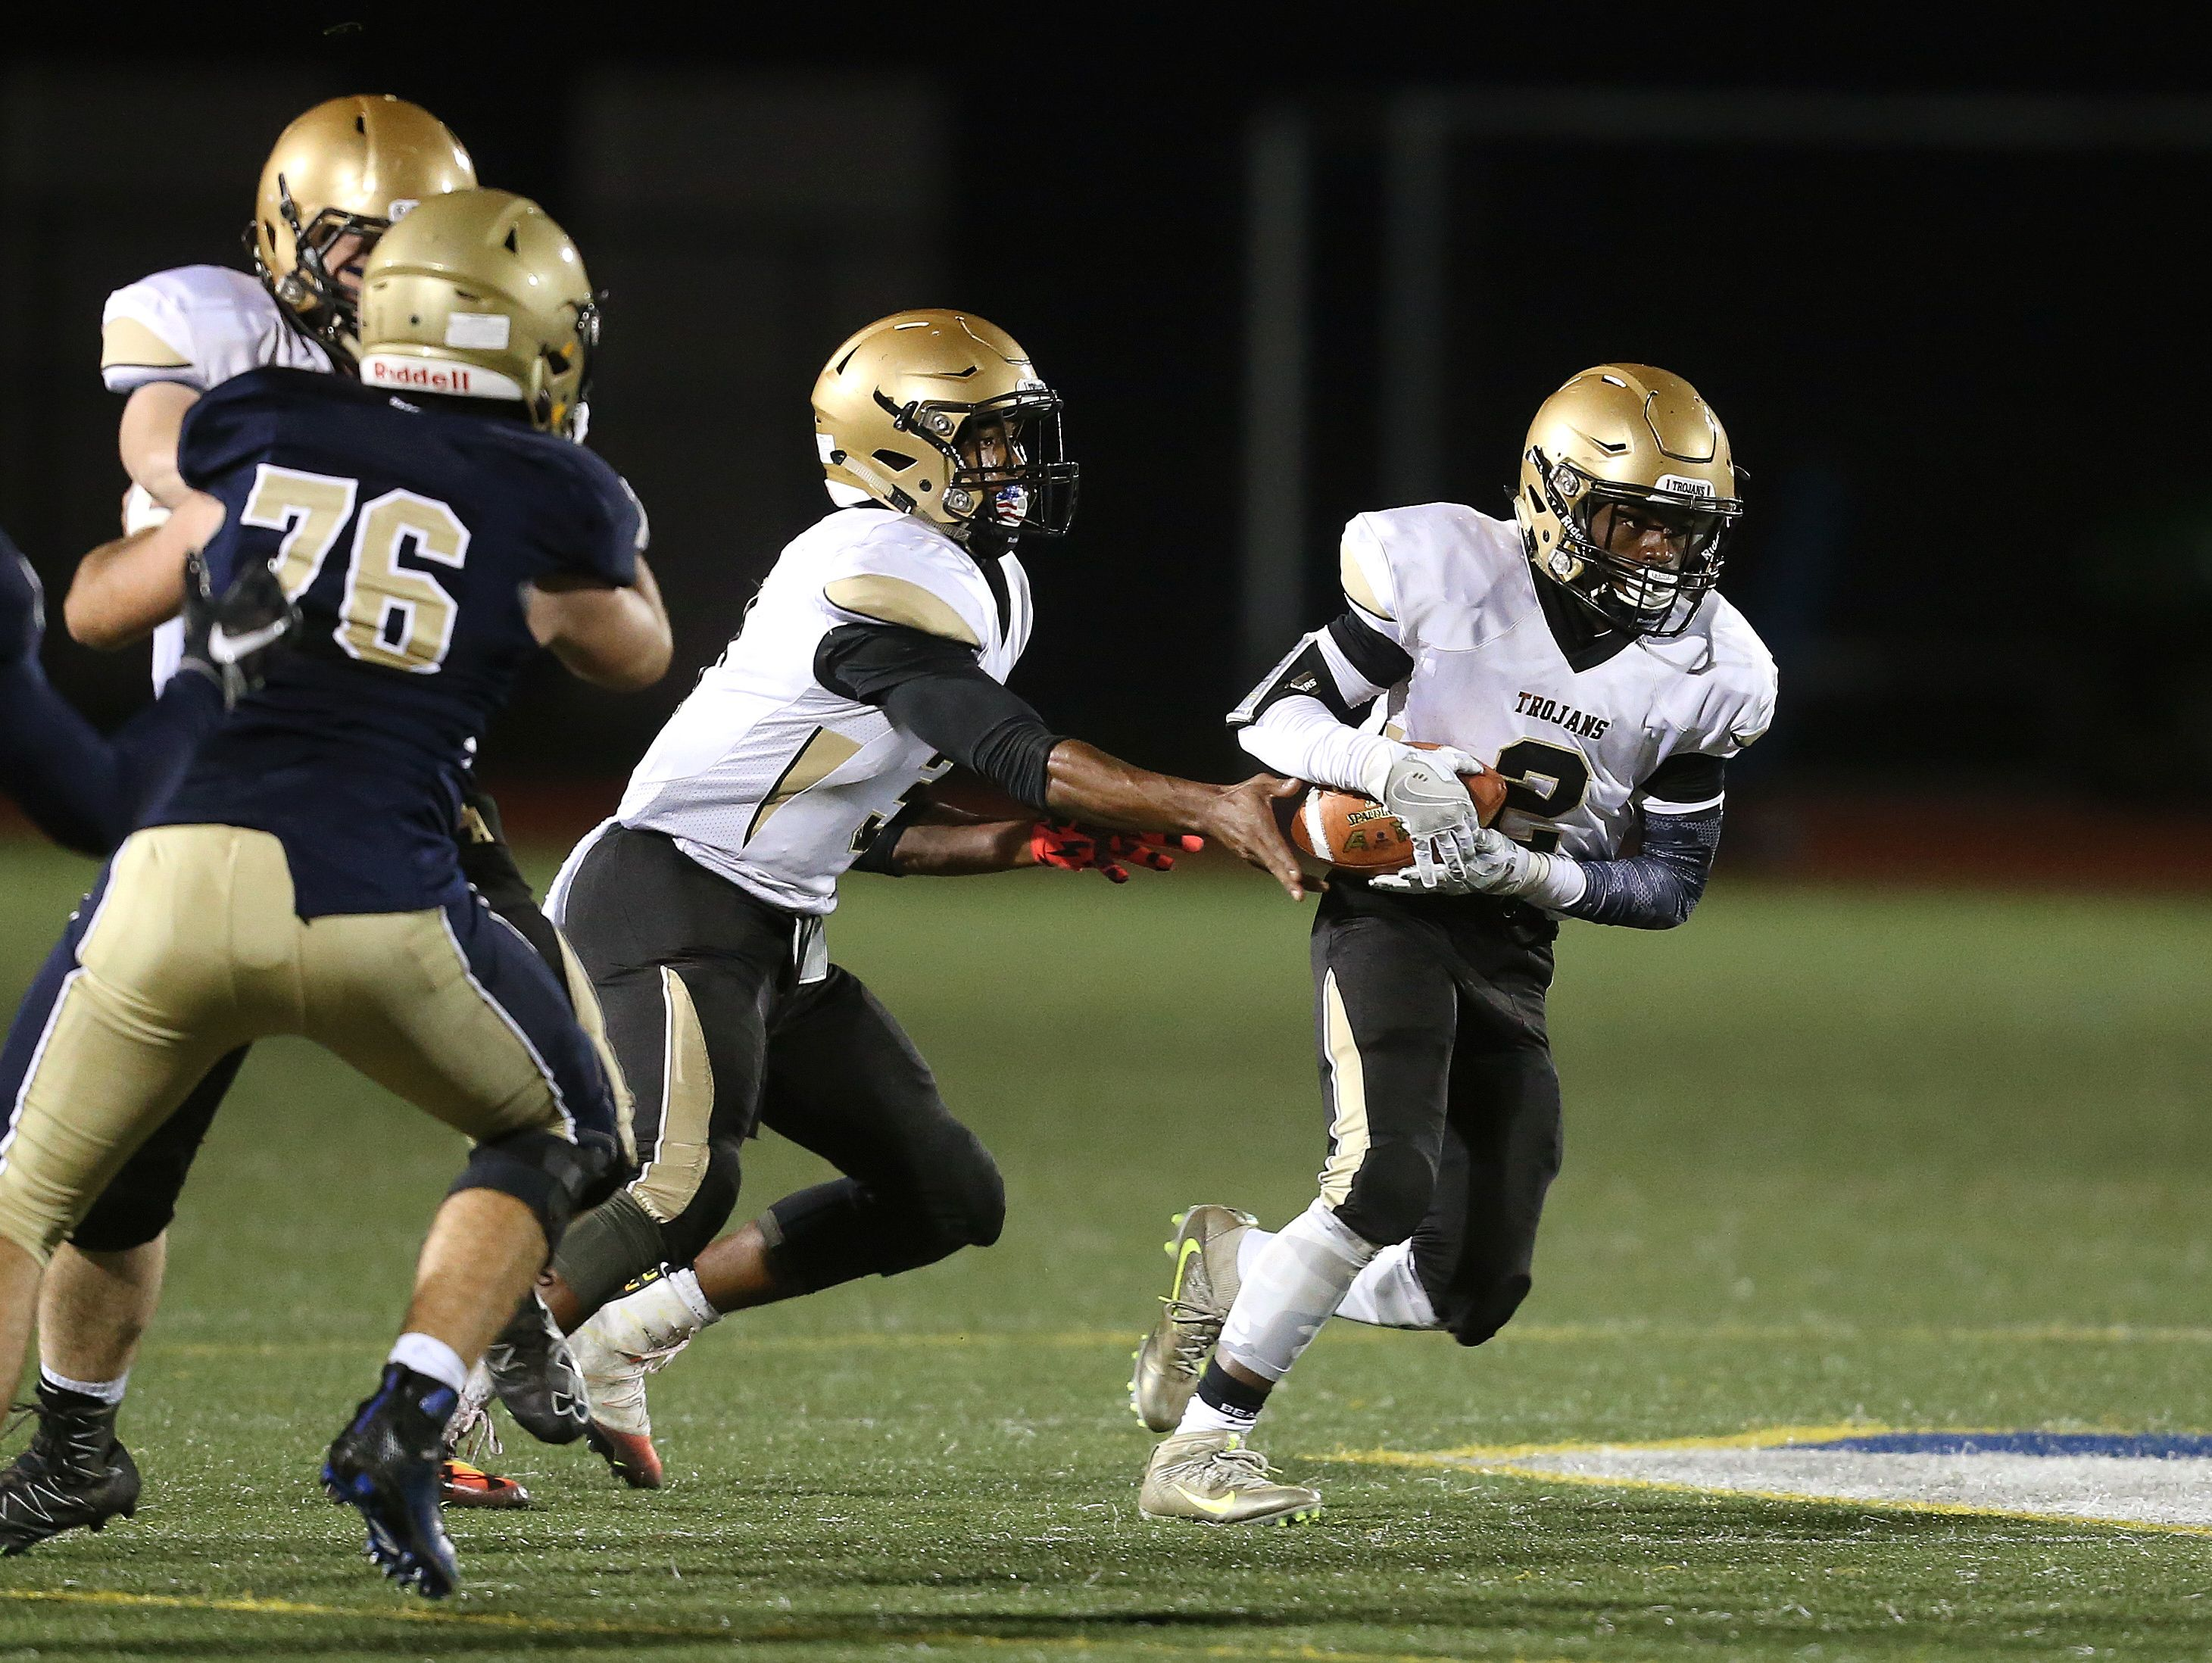 Athena running back Thaj Avies (2) takes a handoff from quarterback Tavon Granison.